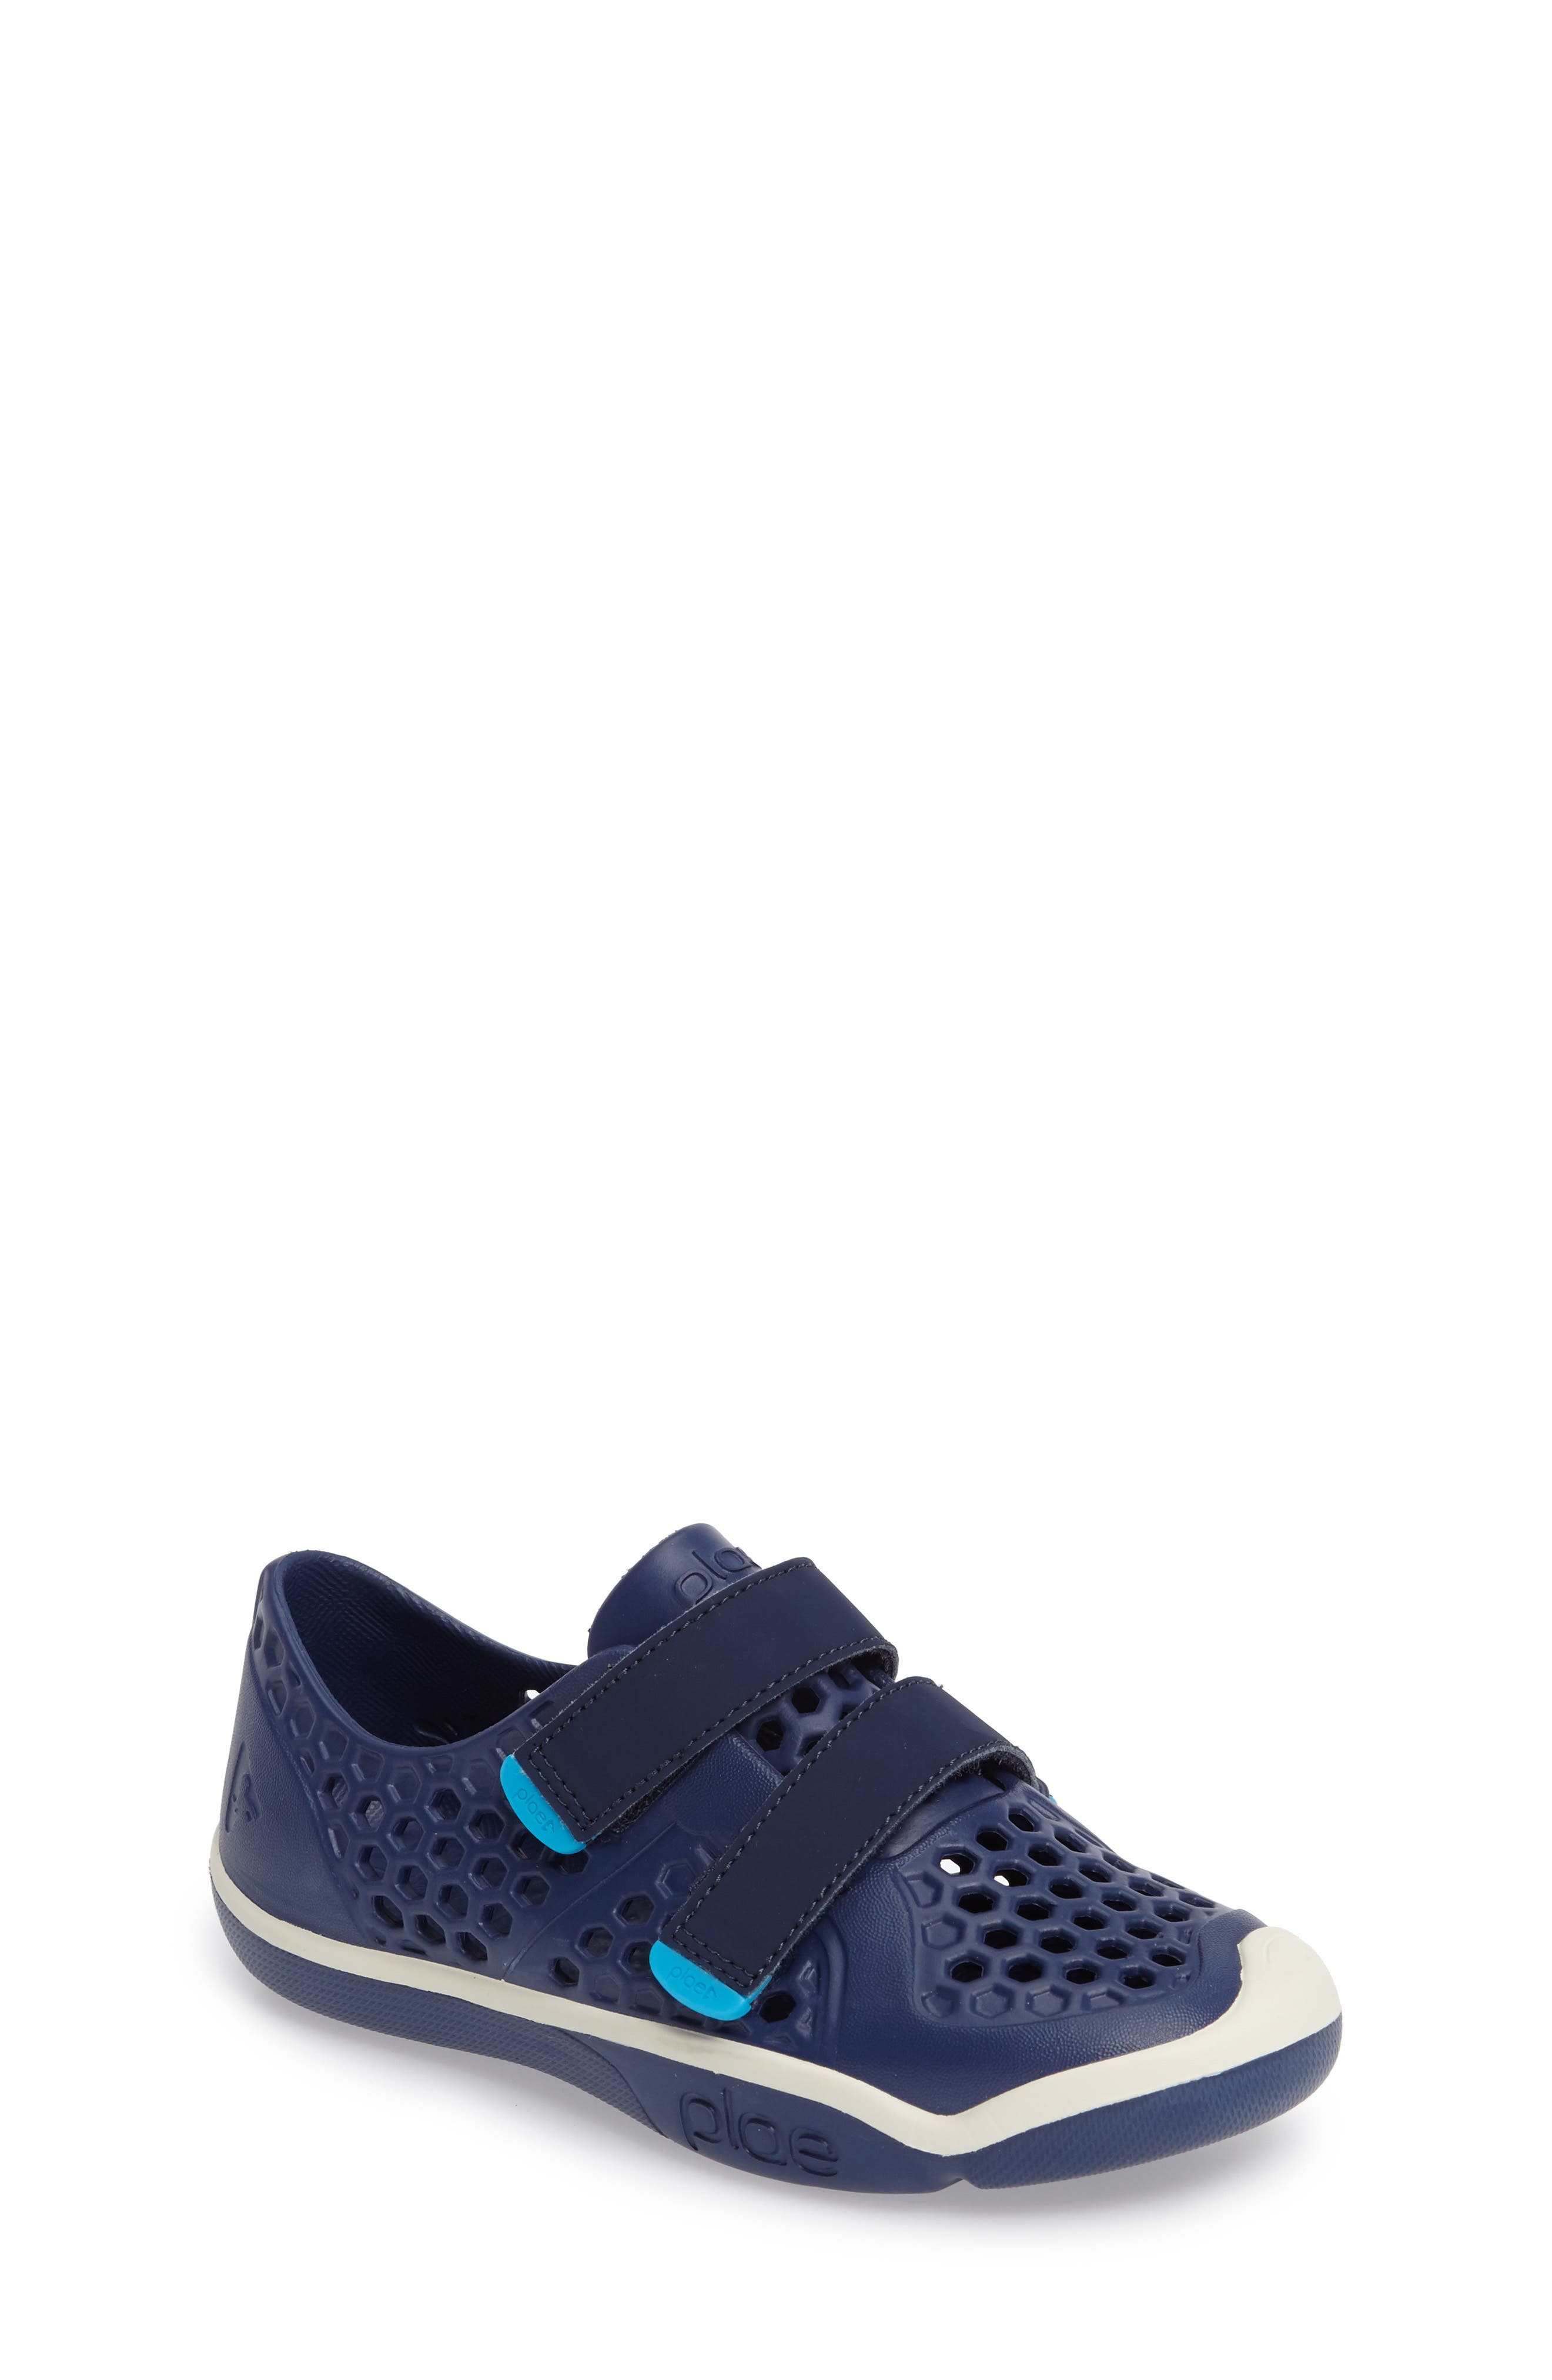 Alternate Image 1 Selected - PLAE Mimo Customizable Sneaker (Toddler & Little Kid)